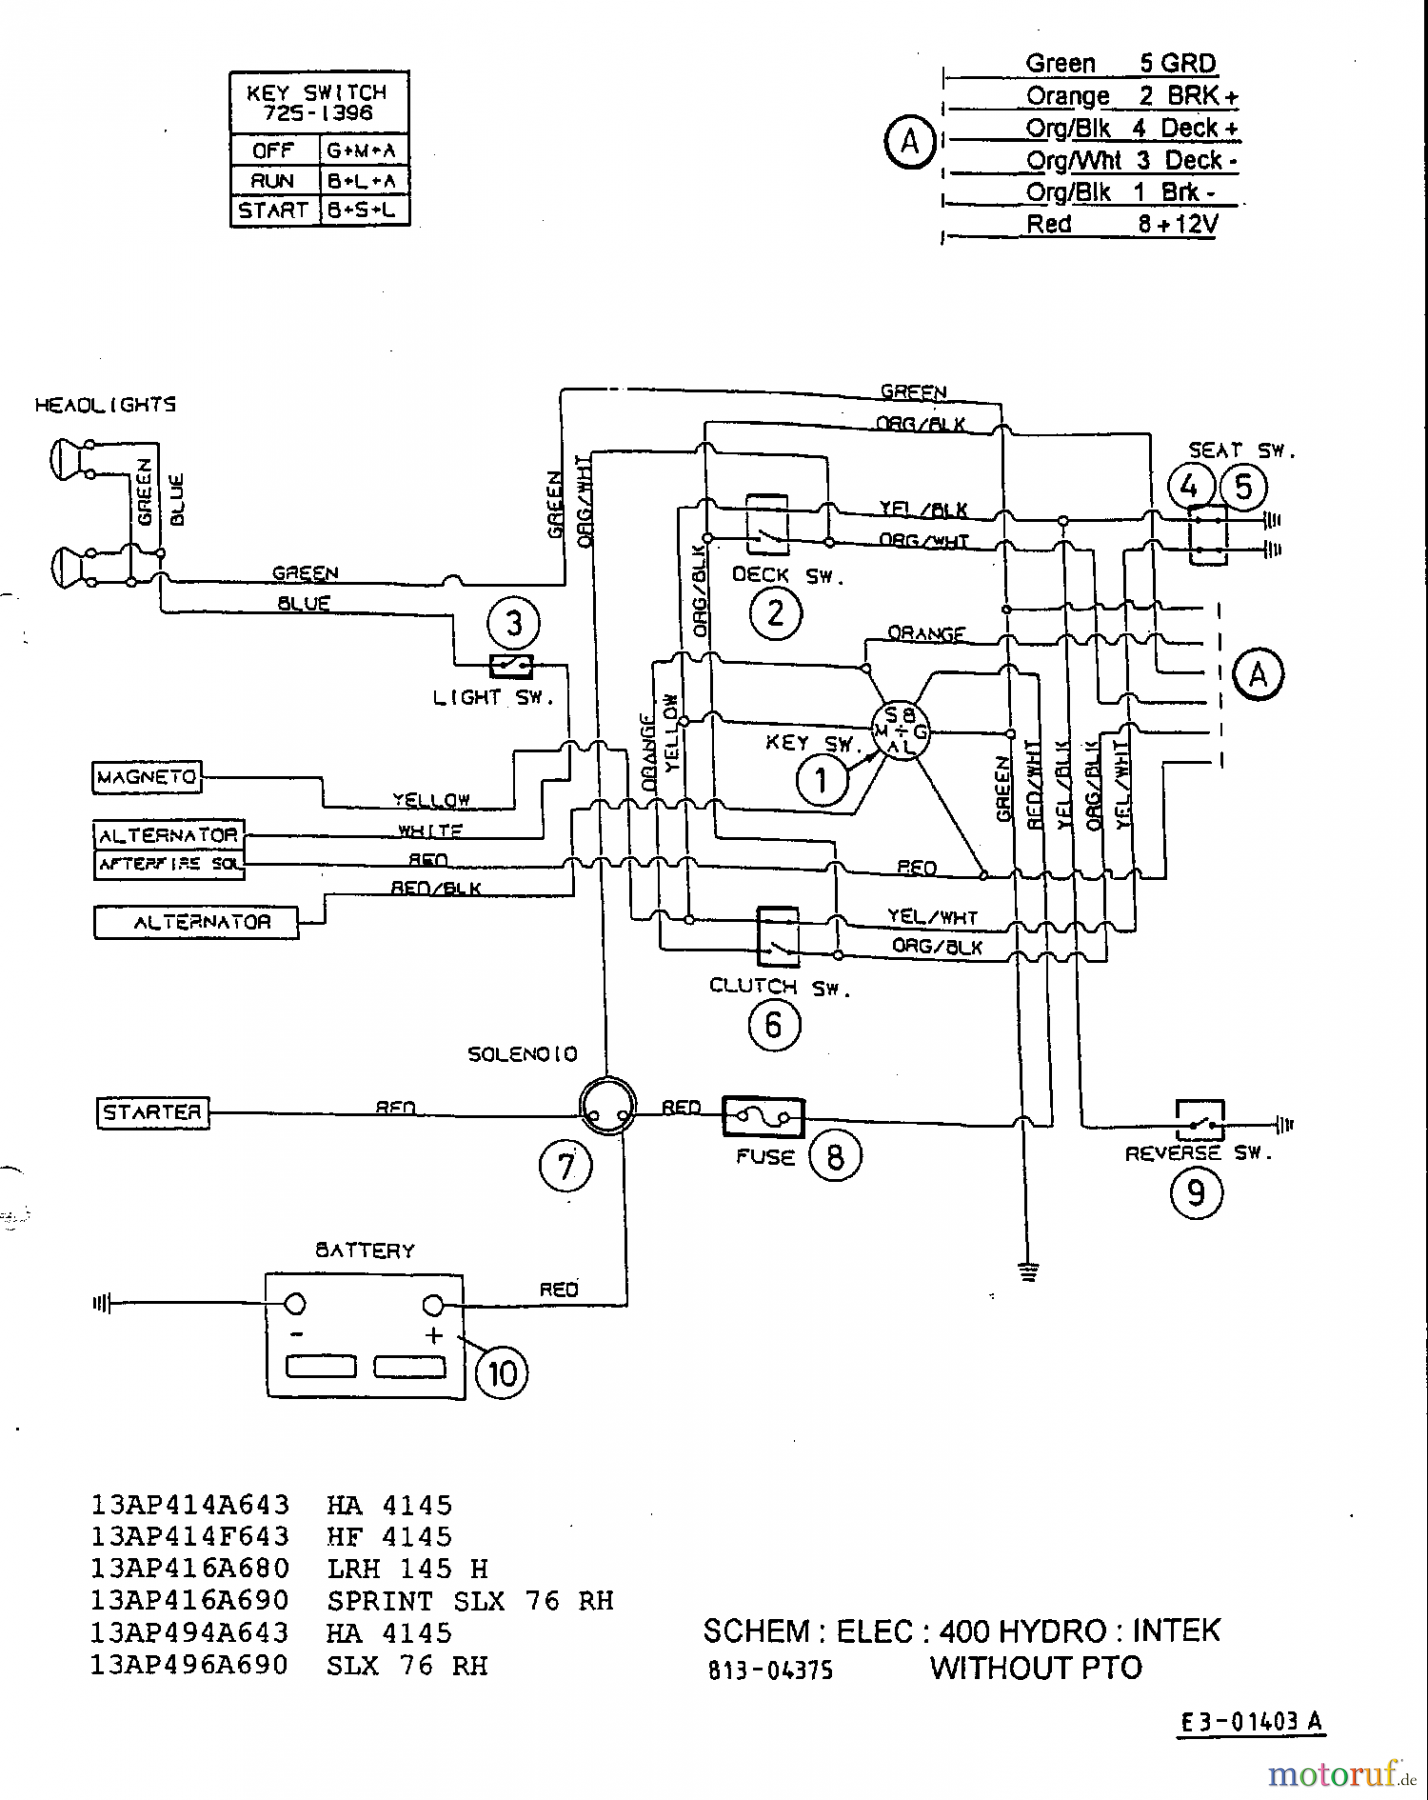 David Brown Alternator Wiring Diagram | Wiring Liry on